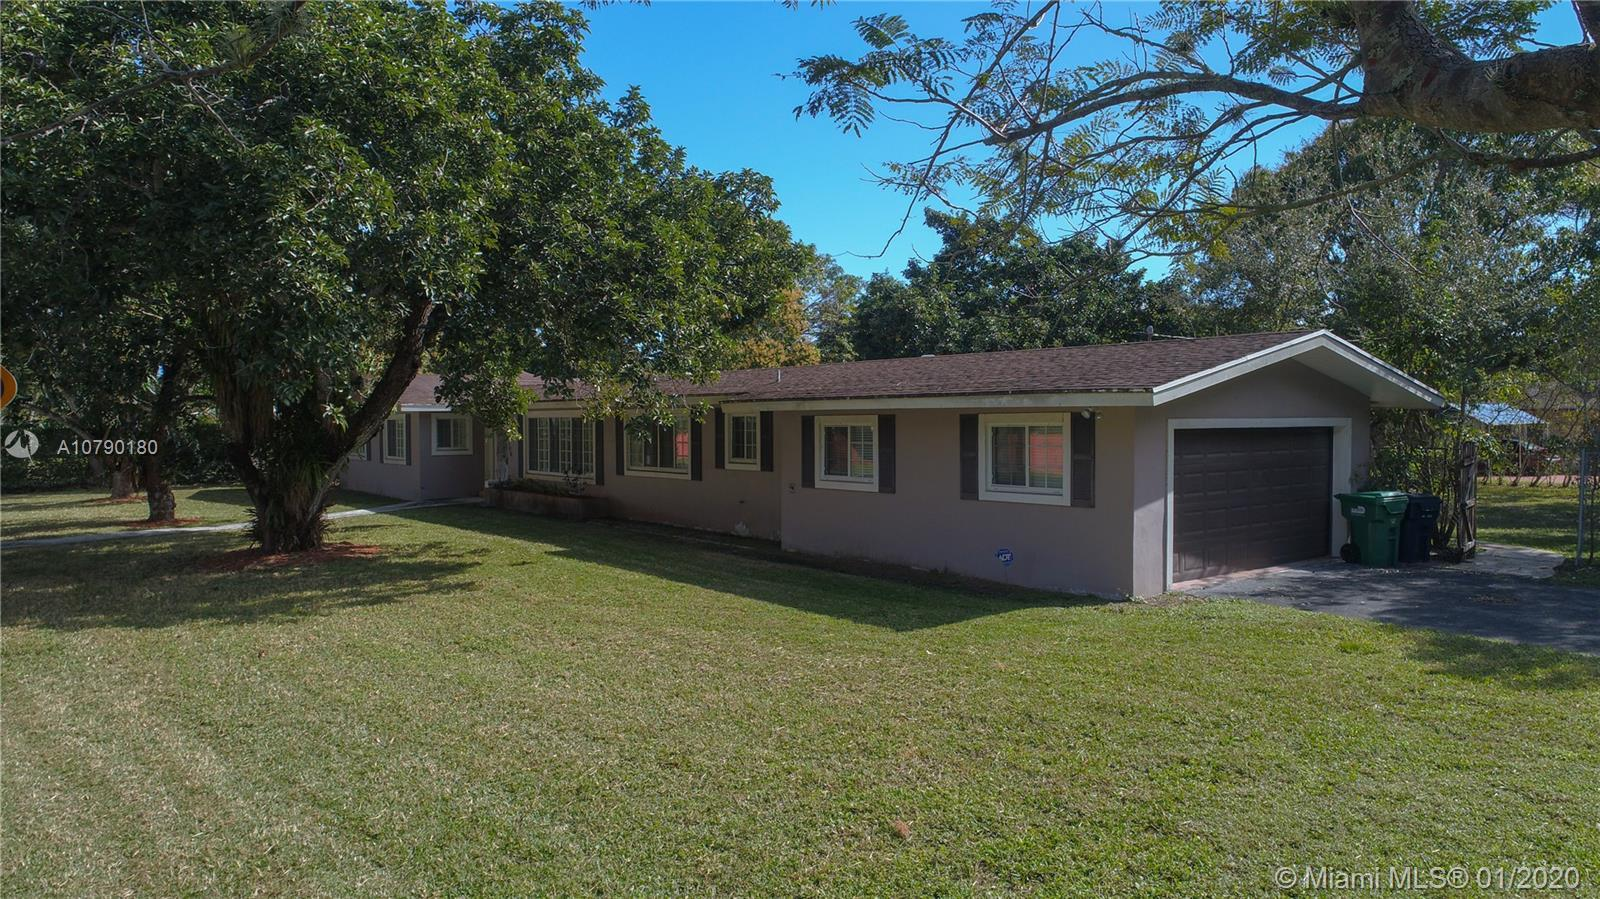 ***REDUCED*** A rare fixer-upper in prime Pinecrest location! Situated on a half-acre corner lot on